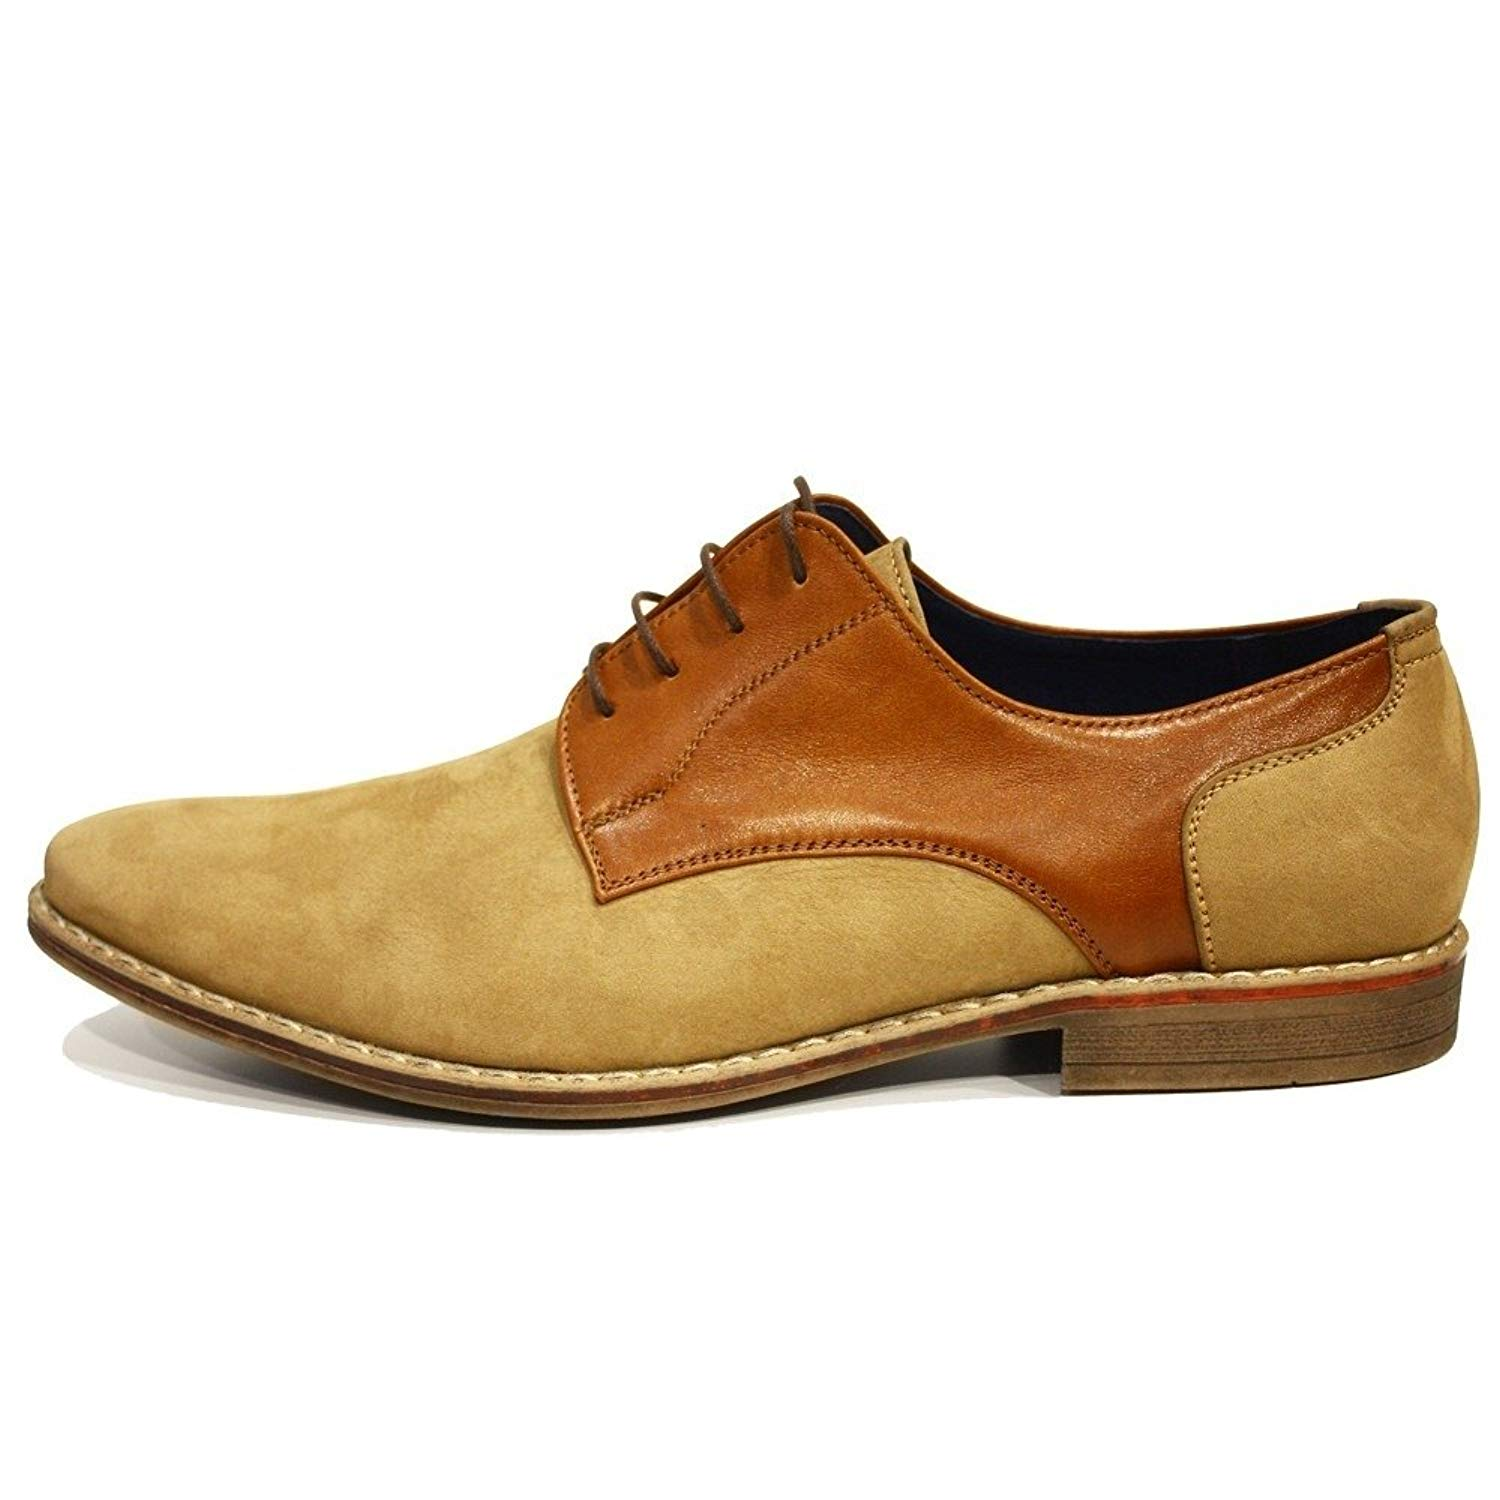 Modello Pepito - Handmade Italian Mens Brown Oxfords Dress Shoes - Cowhide Suede - Lace-up